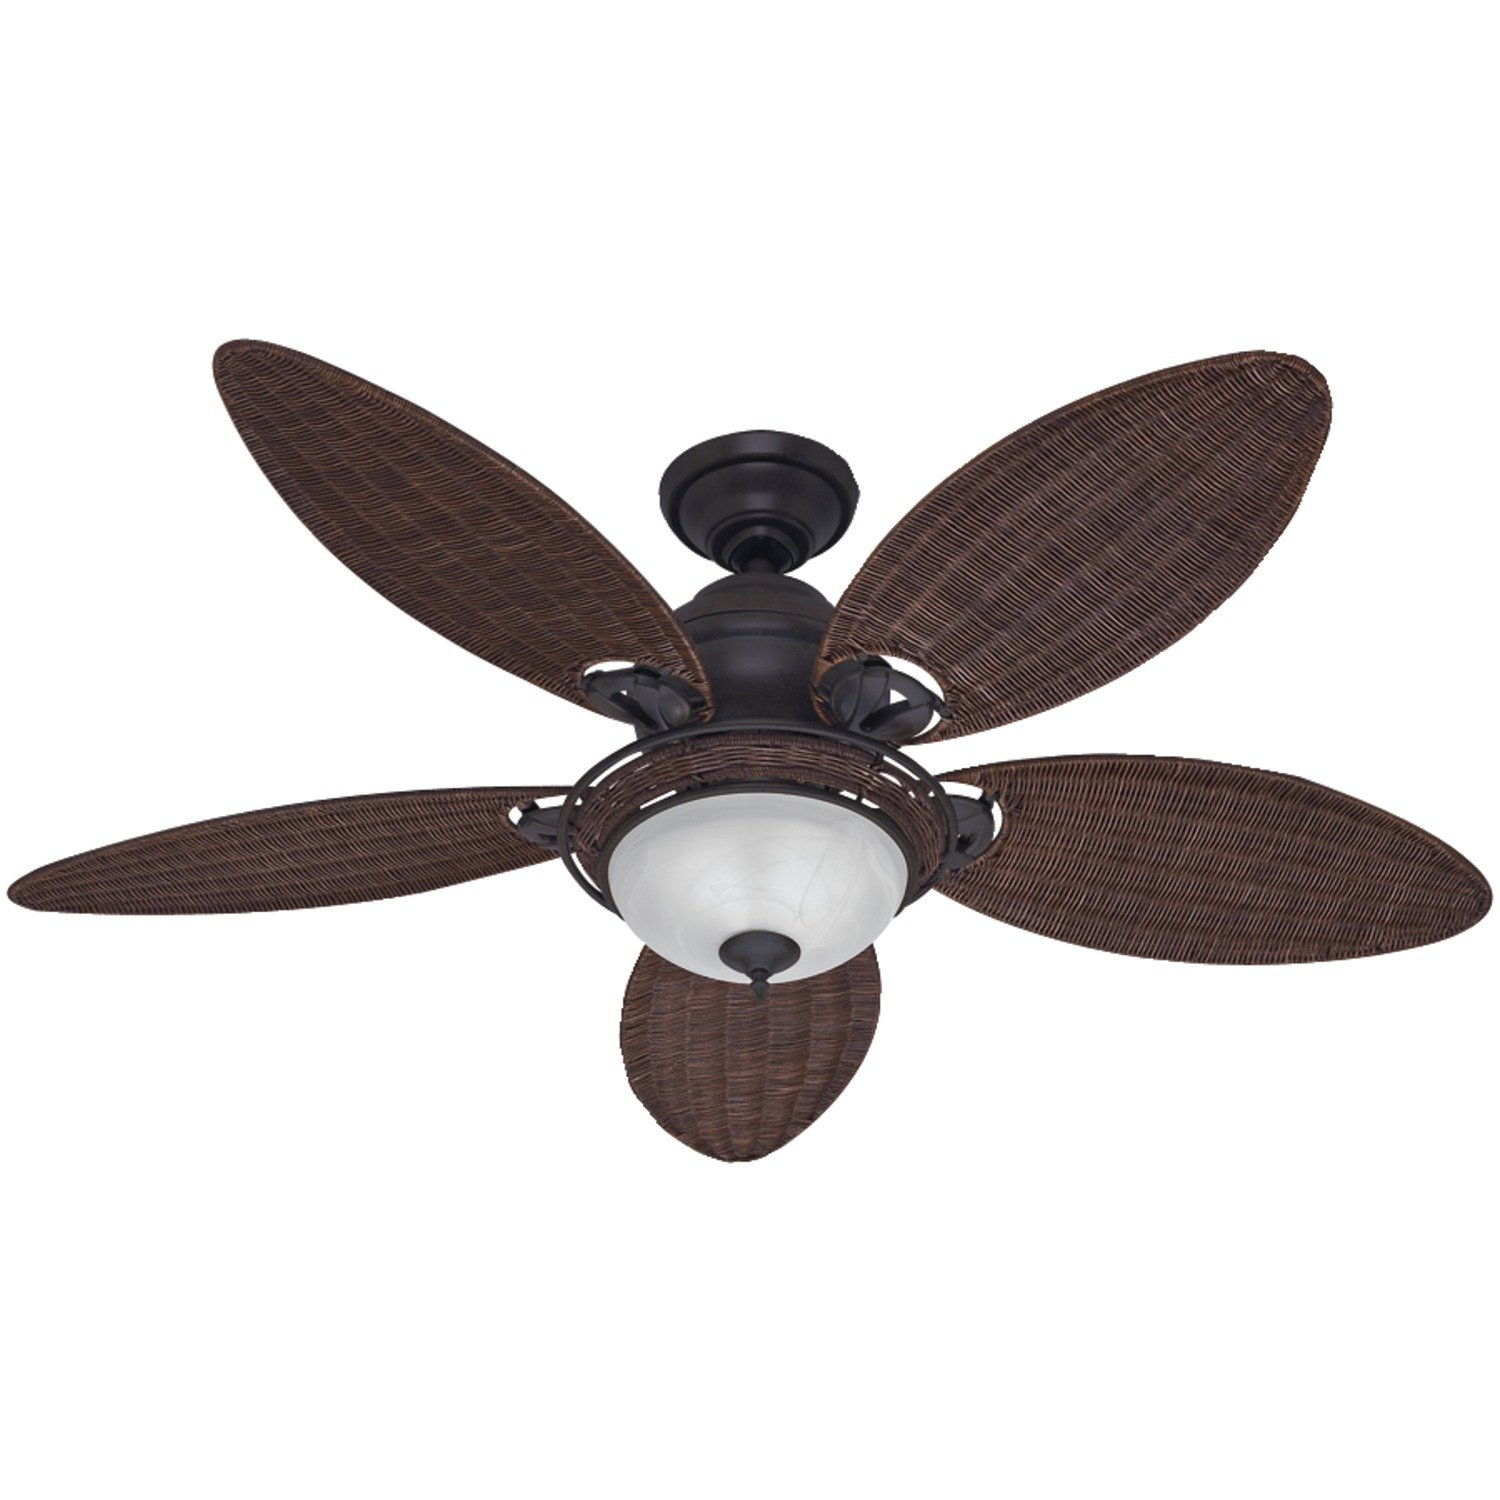 Hunter Fan Company 54095 Caribbean Breeze 54-Inch Ceiling Fan with Five Antique Dark Wicker Blades and Light Kit, Weathered Bronze by Hunter Fan Company